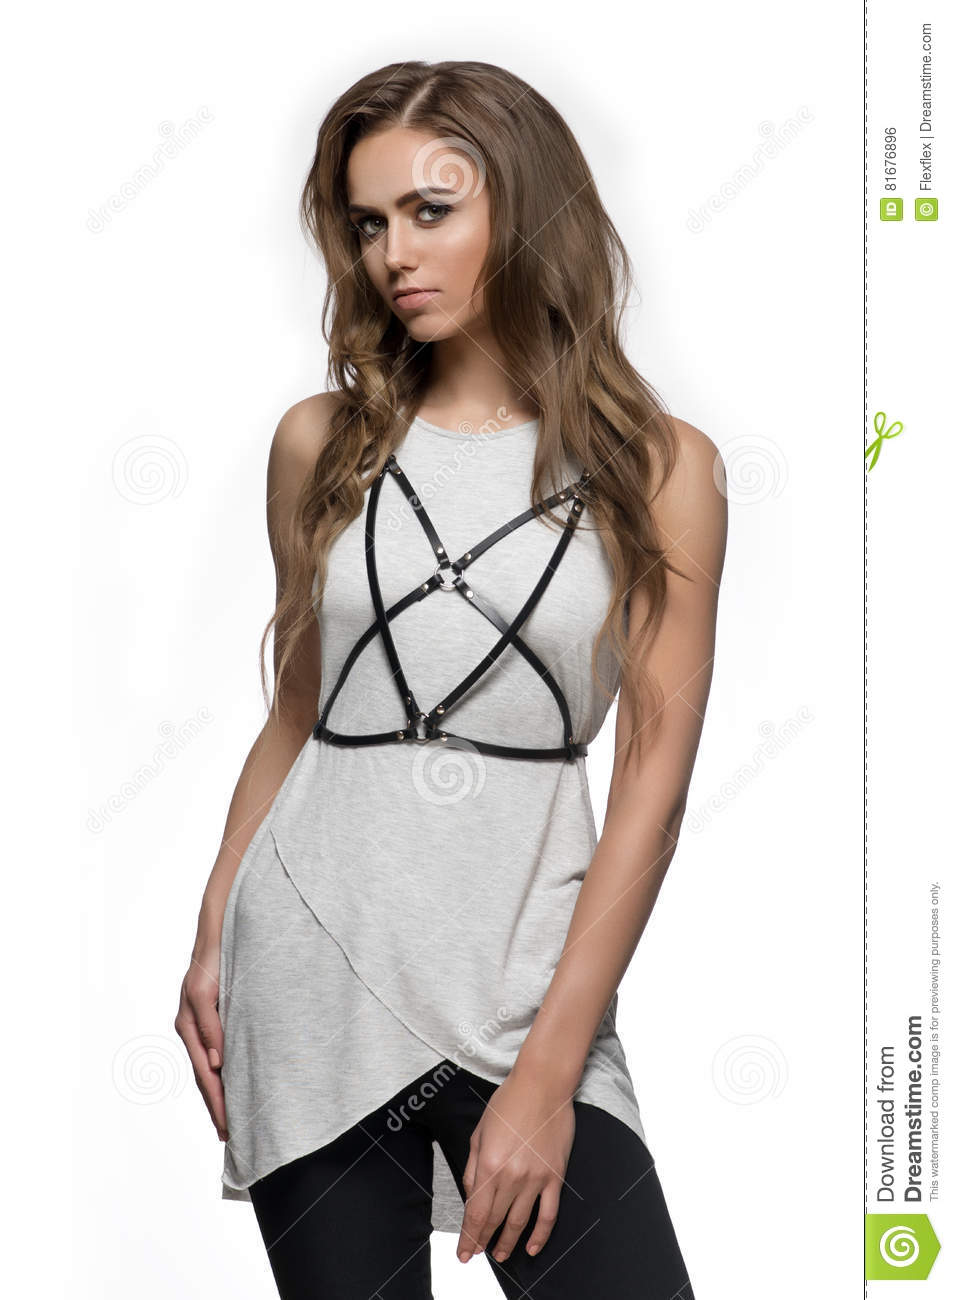 Young fashion woman posing in leather harness